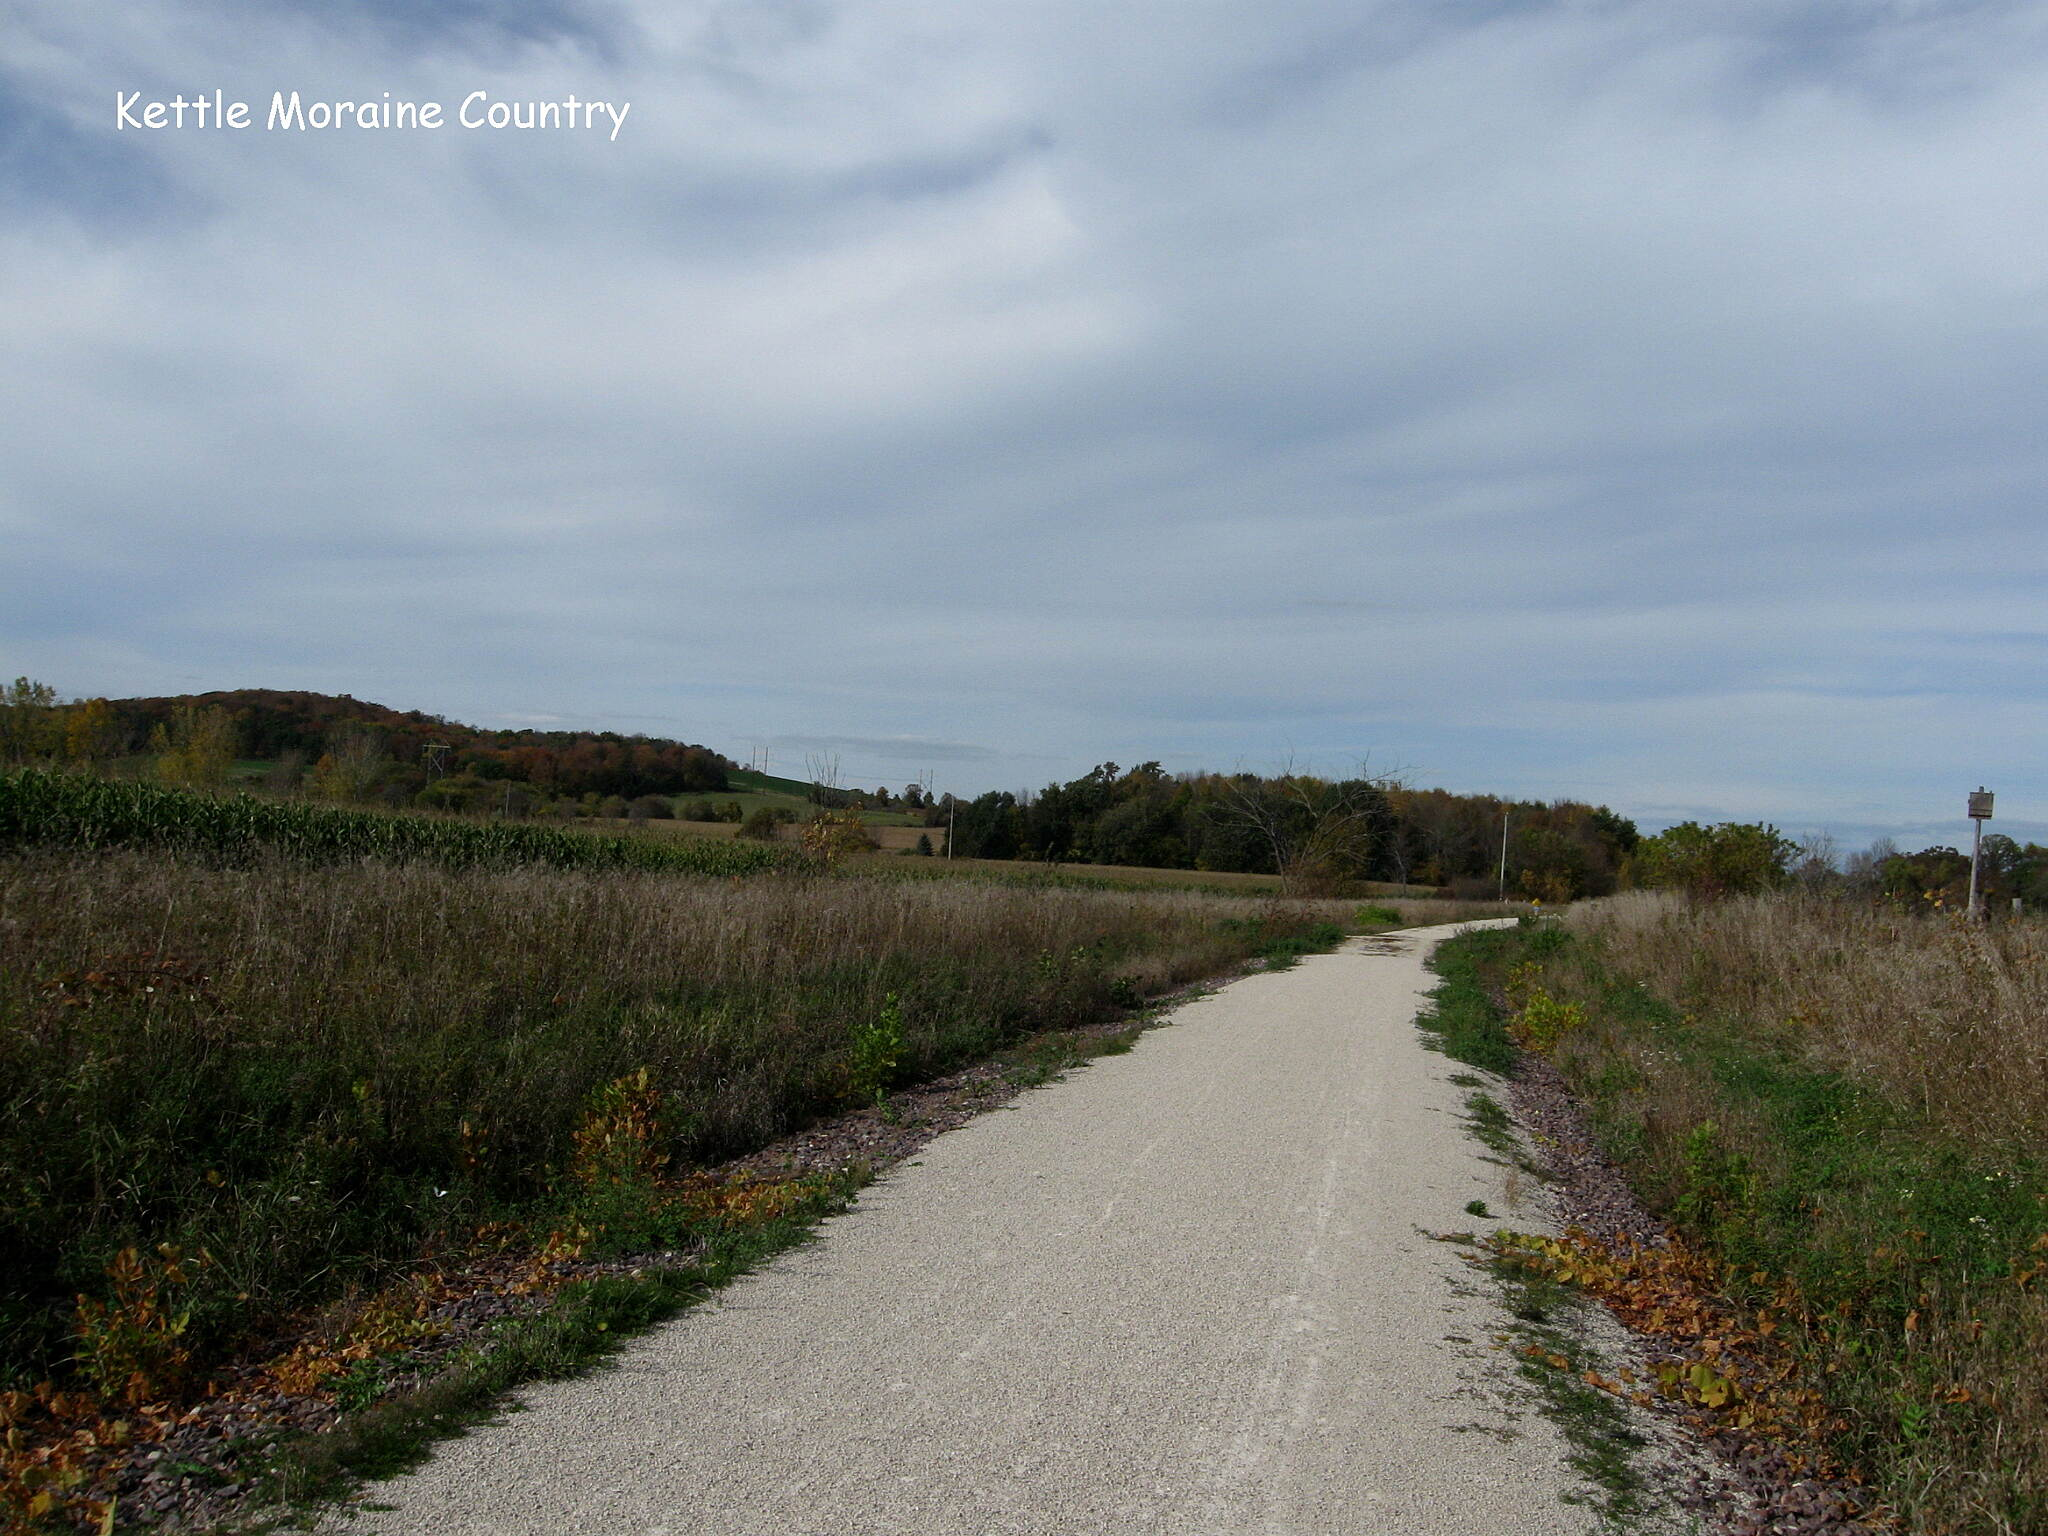 Eisenbahn State Trail Kettle Moraine Country